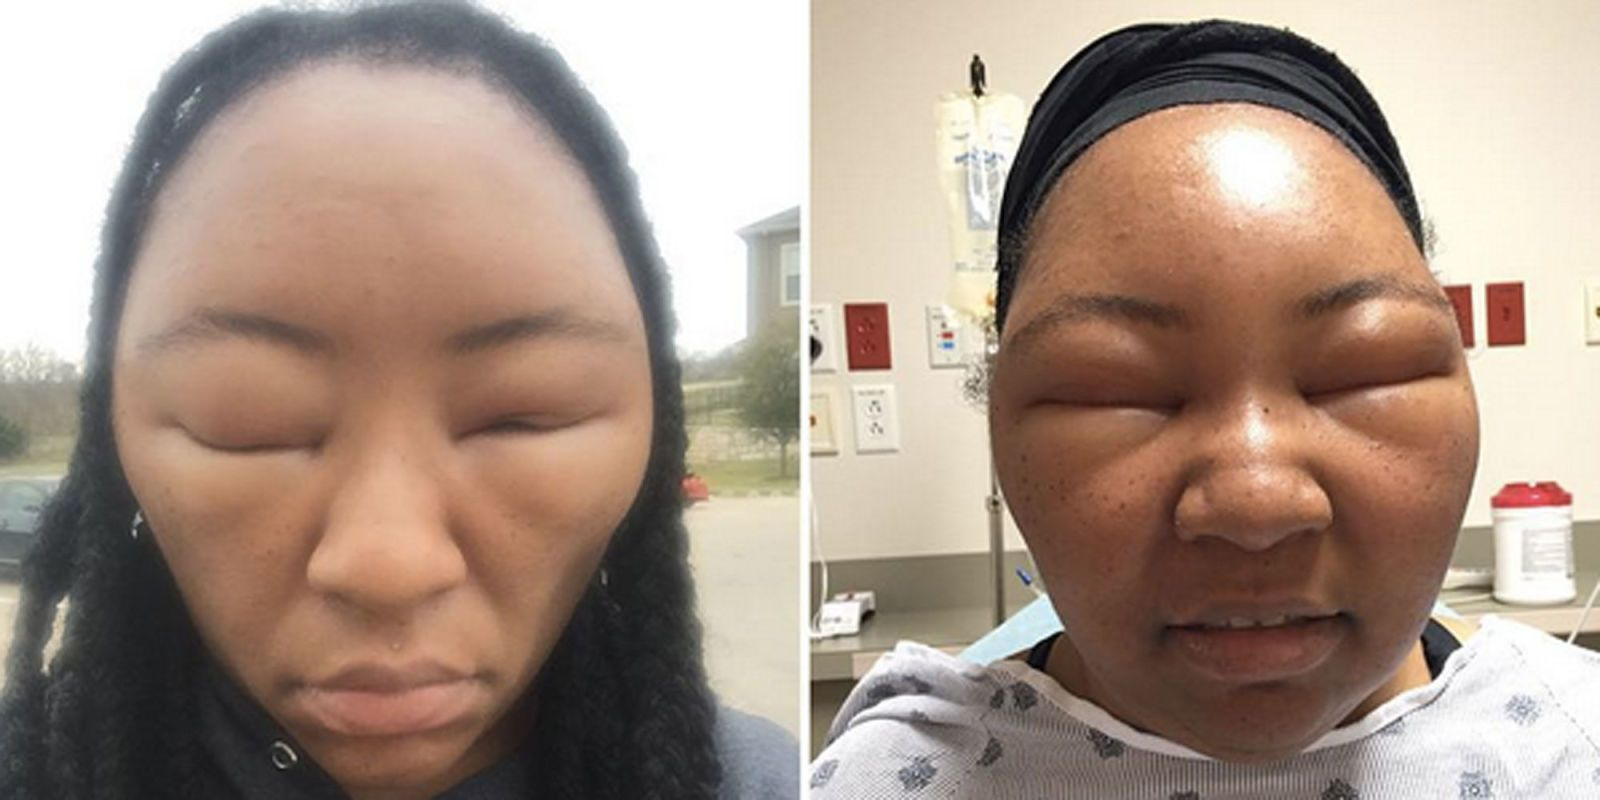 Health Vlogger Shares Photos After Scary Allergic Reaction To